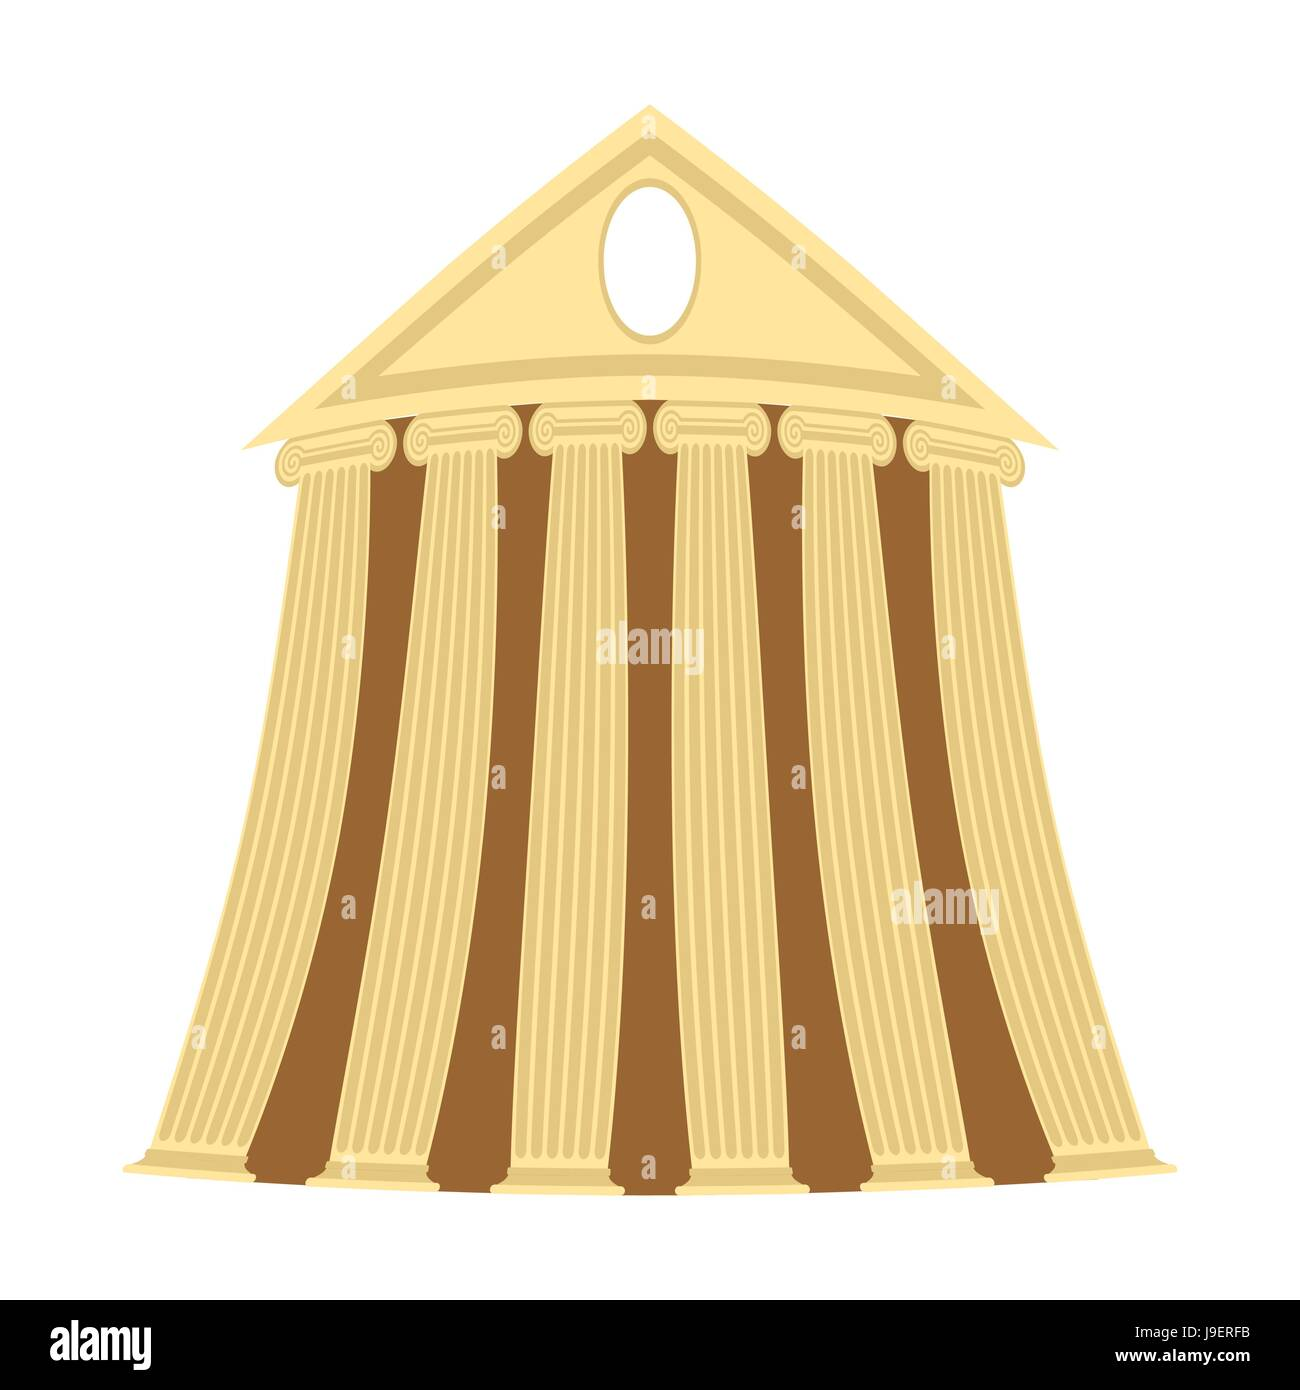 Greek temple of cartoon style on a white background. Vector illustration. - Stock Vector